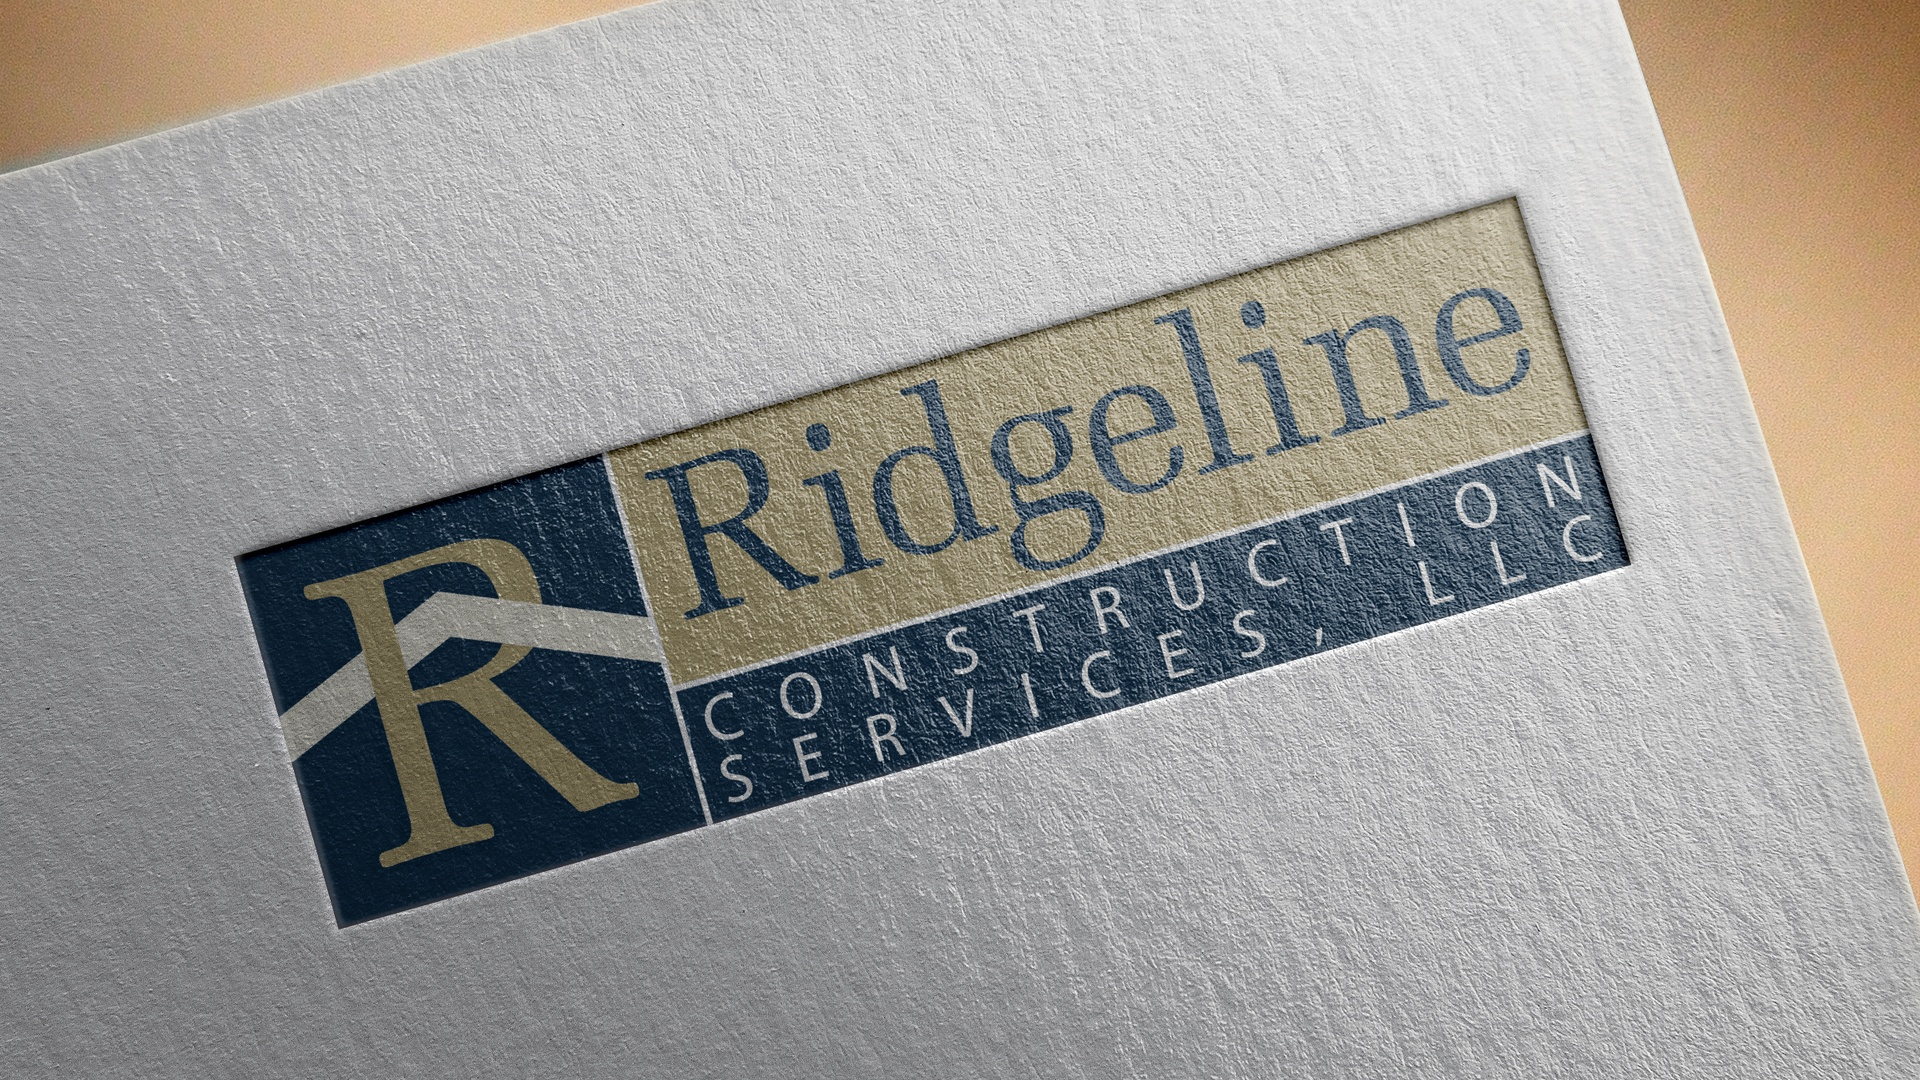 Ridgeline Construction